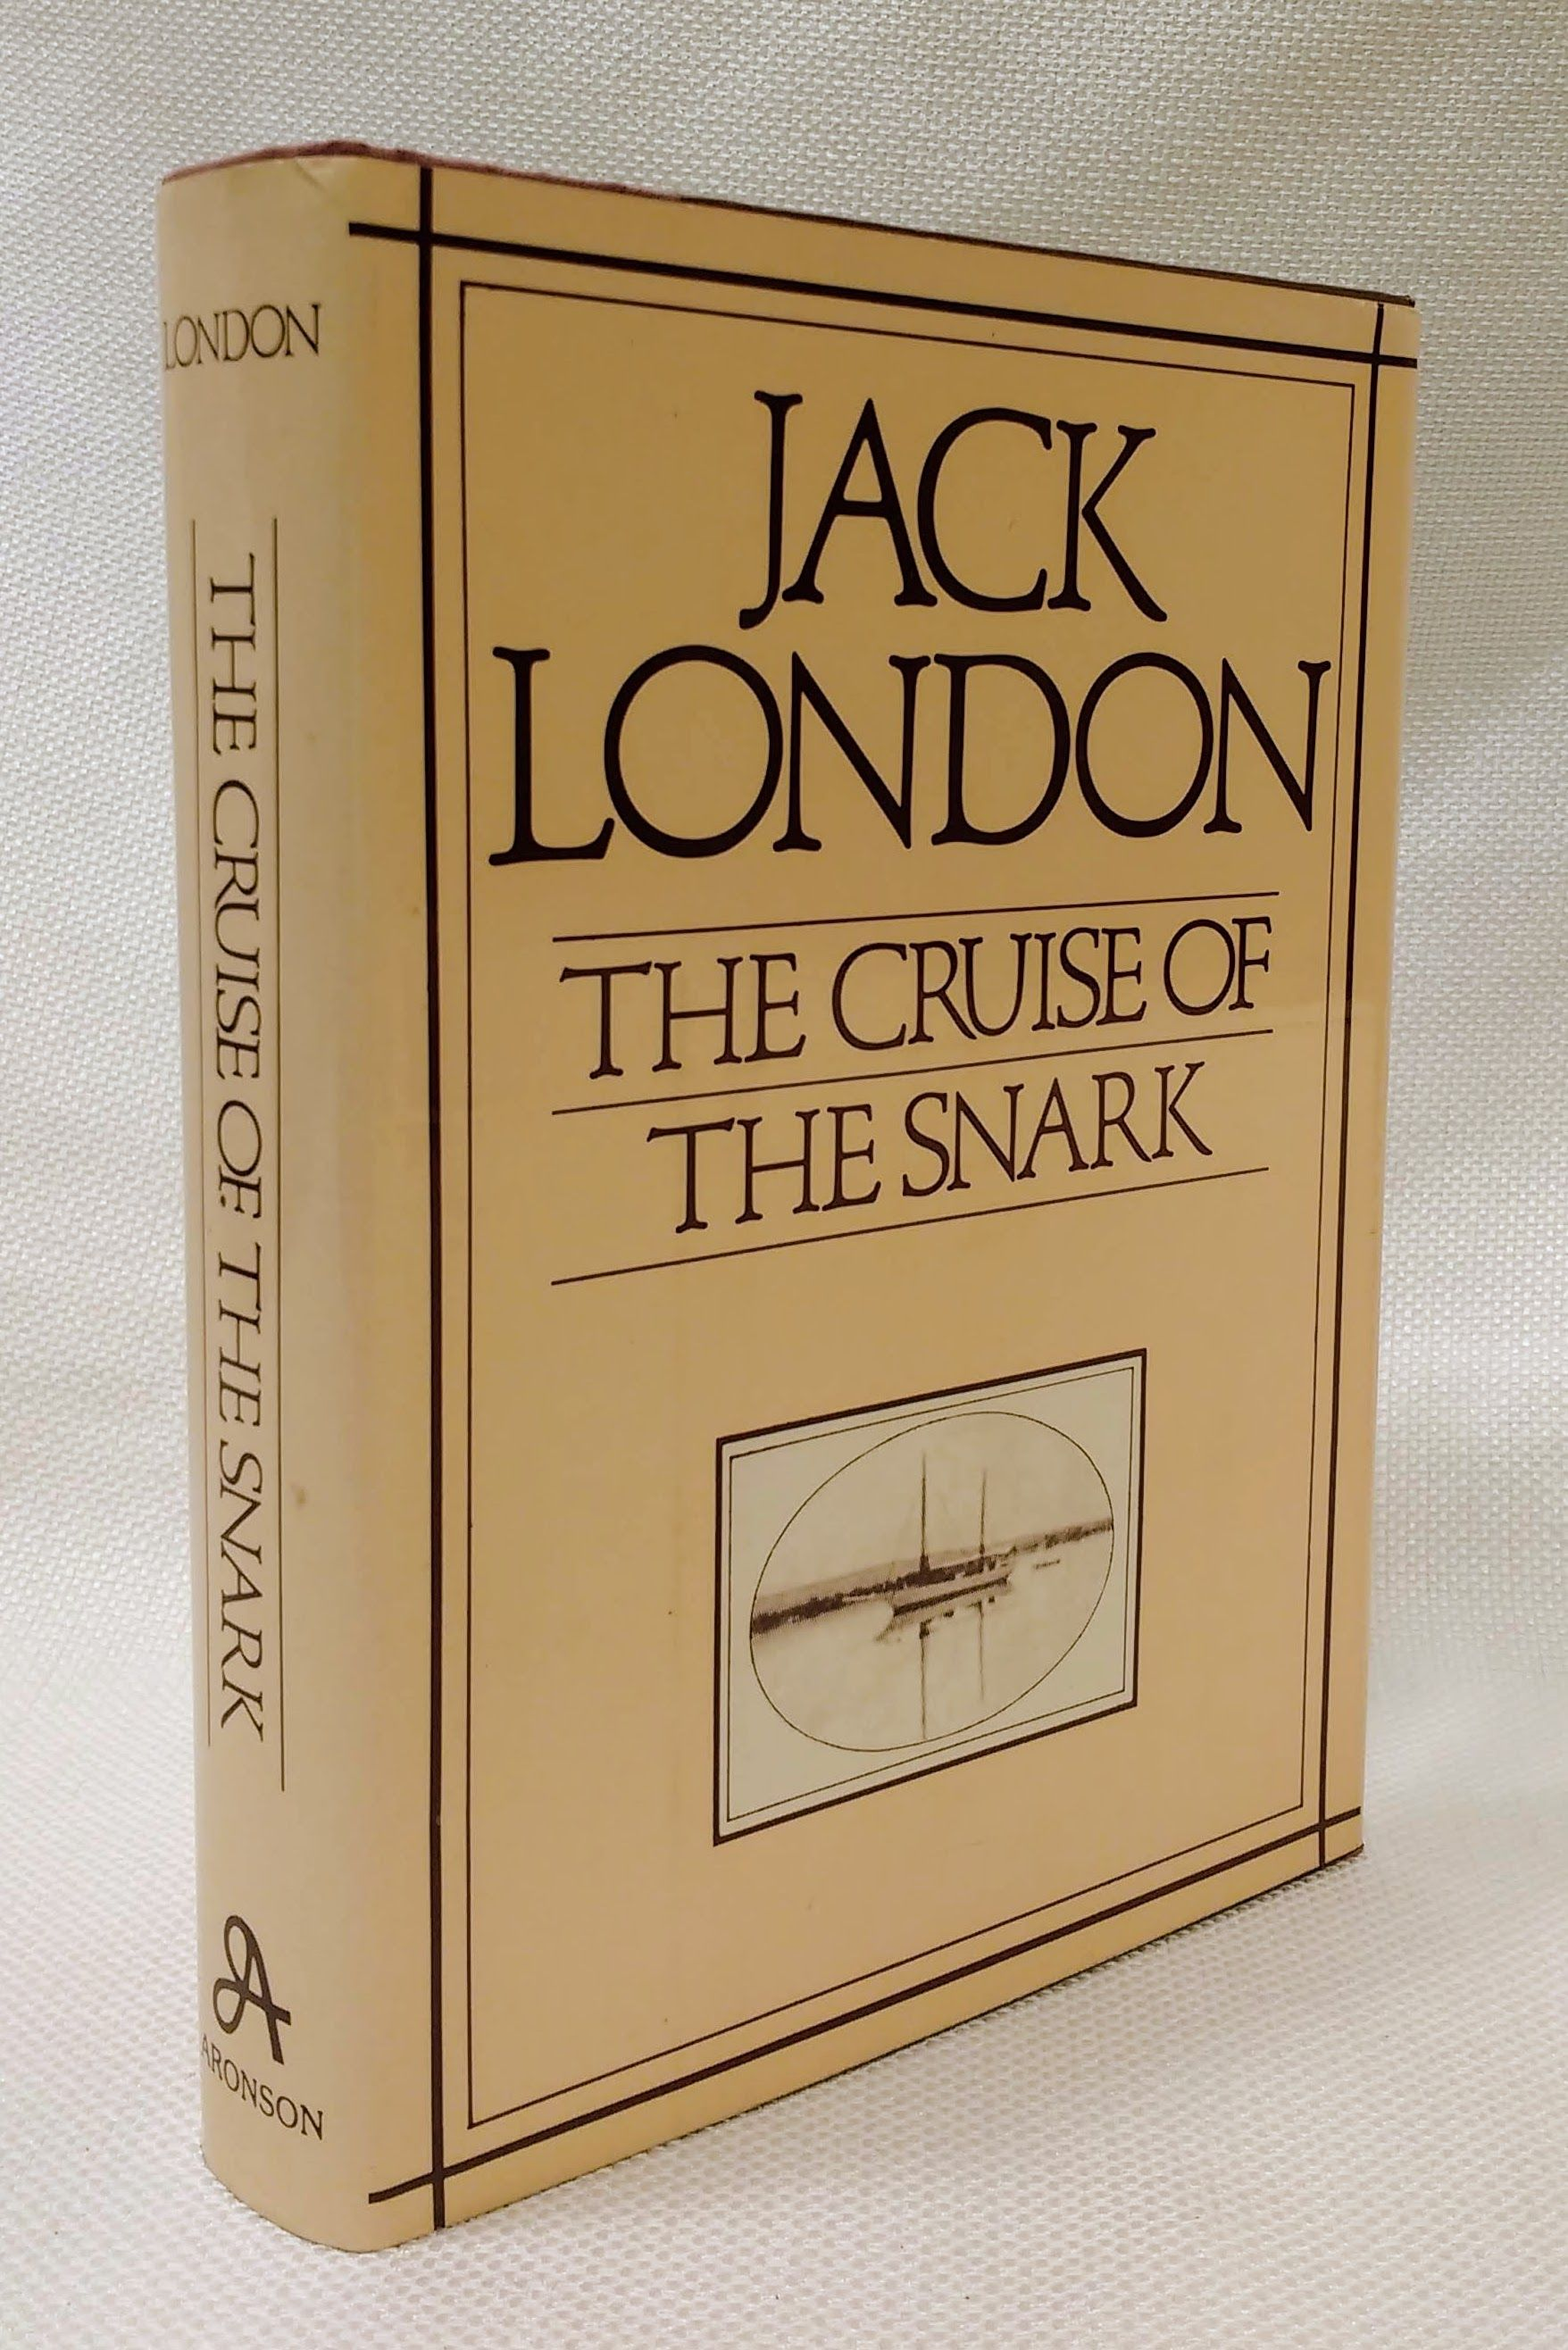 The cruise of the Snark, London, Jack